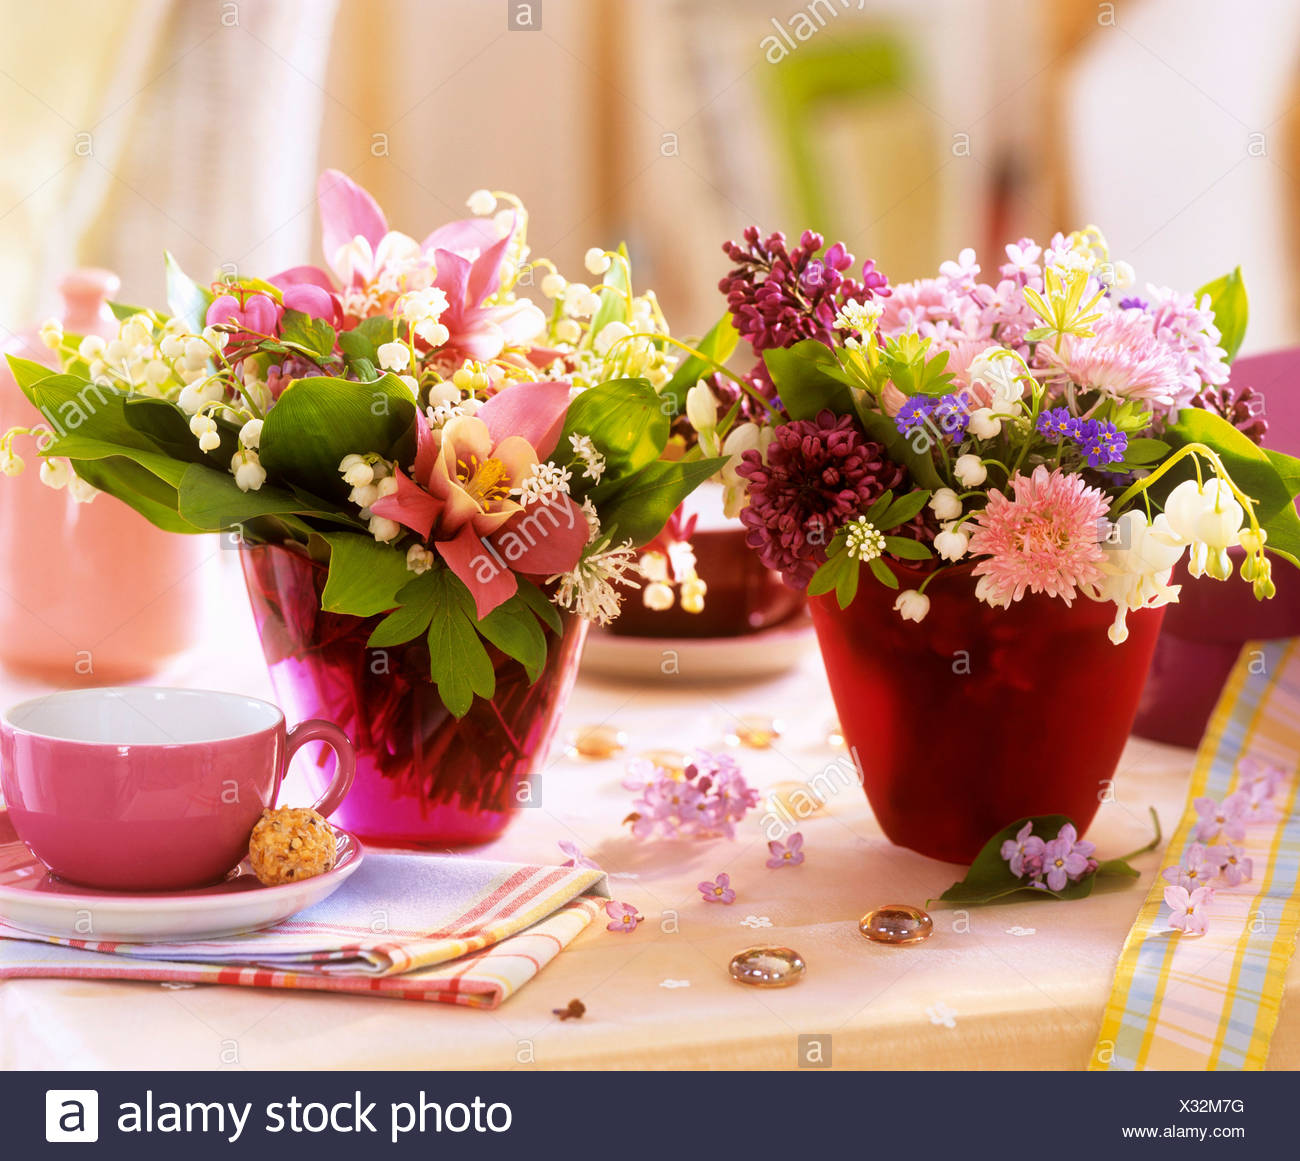 Small posies of spring flowers as table decoration stock photo small posies of spring flowers as table decoration mightylinksfo